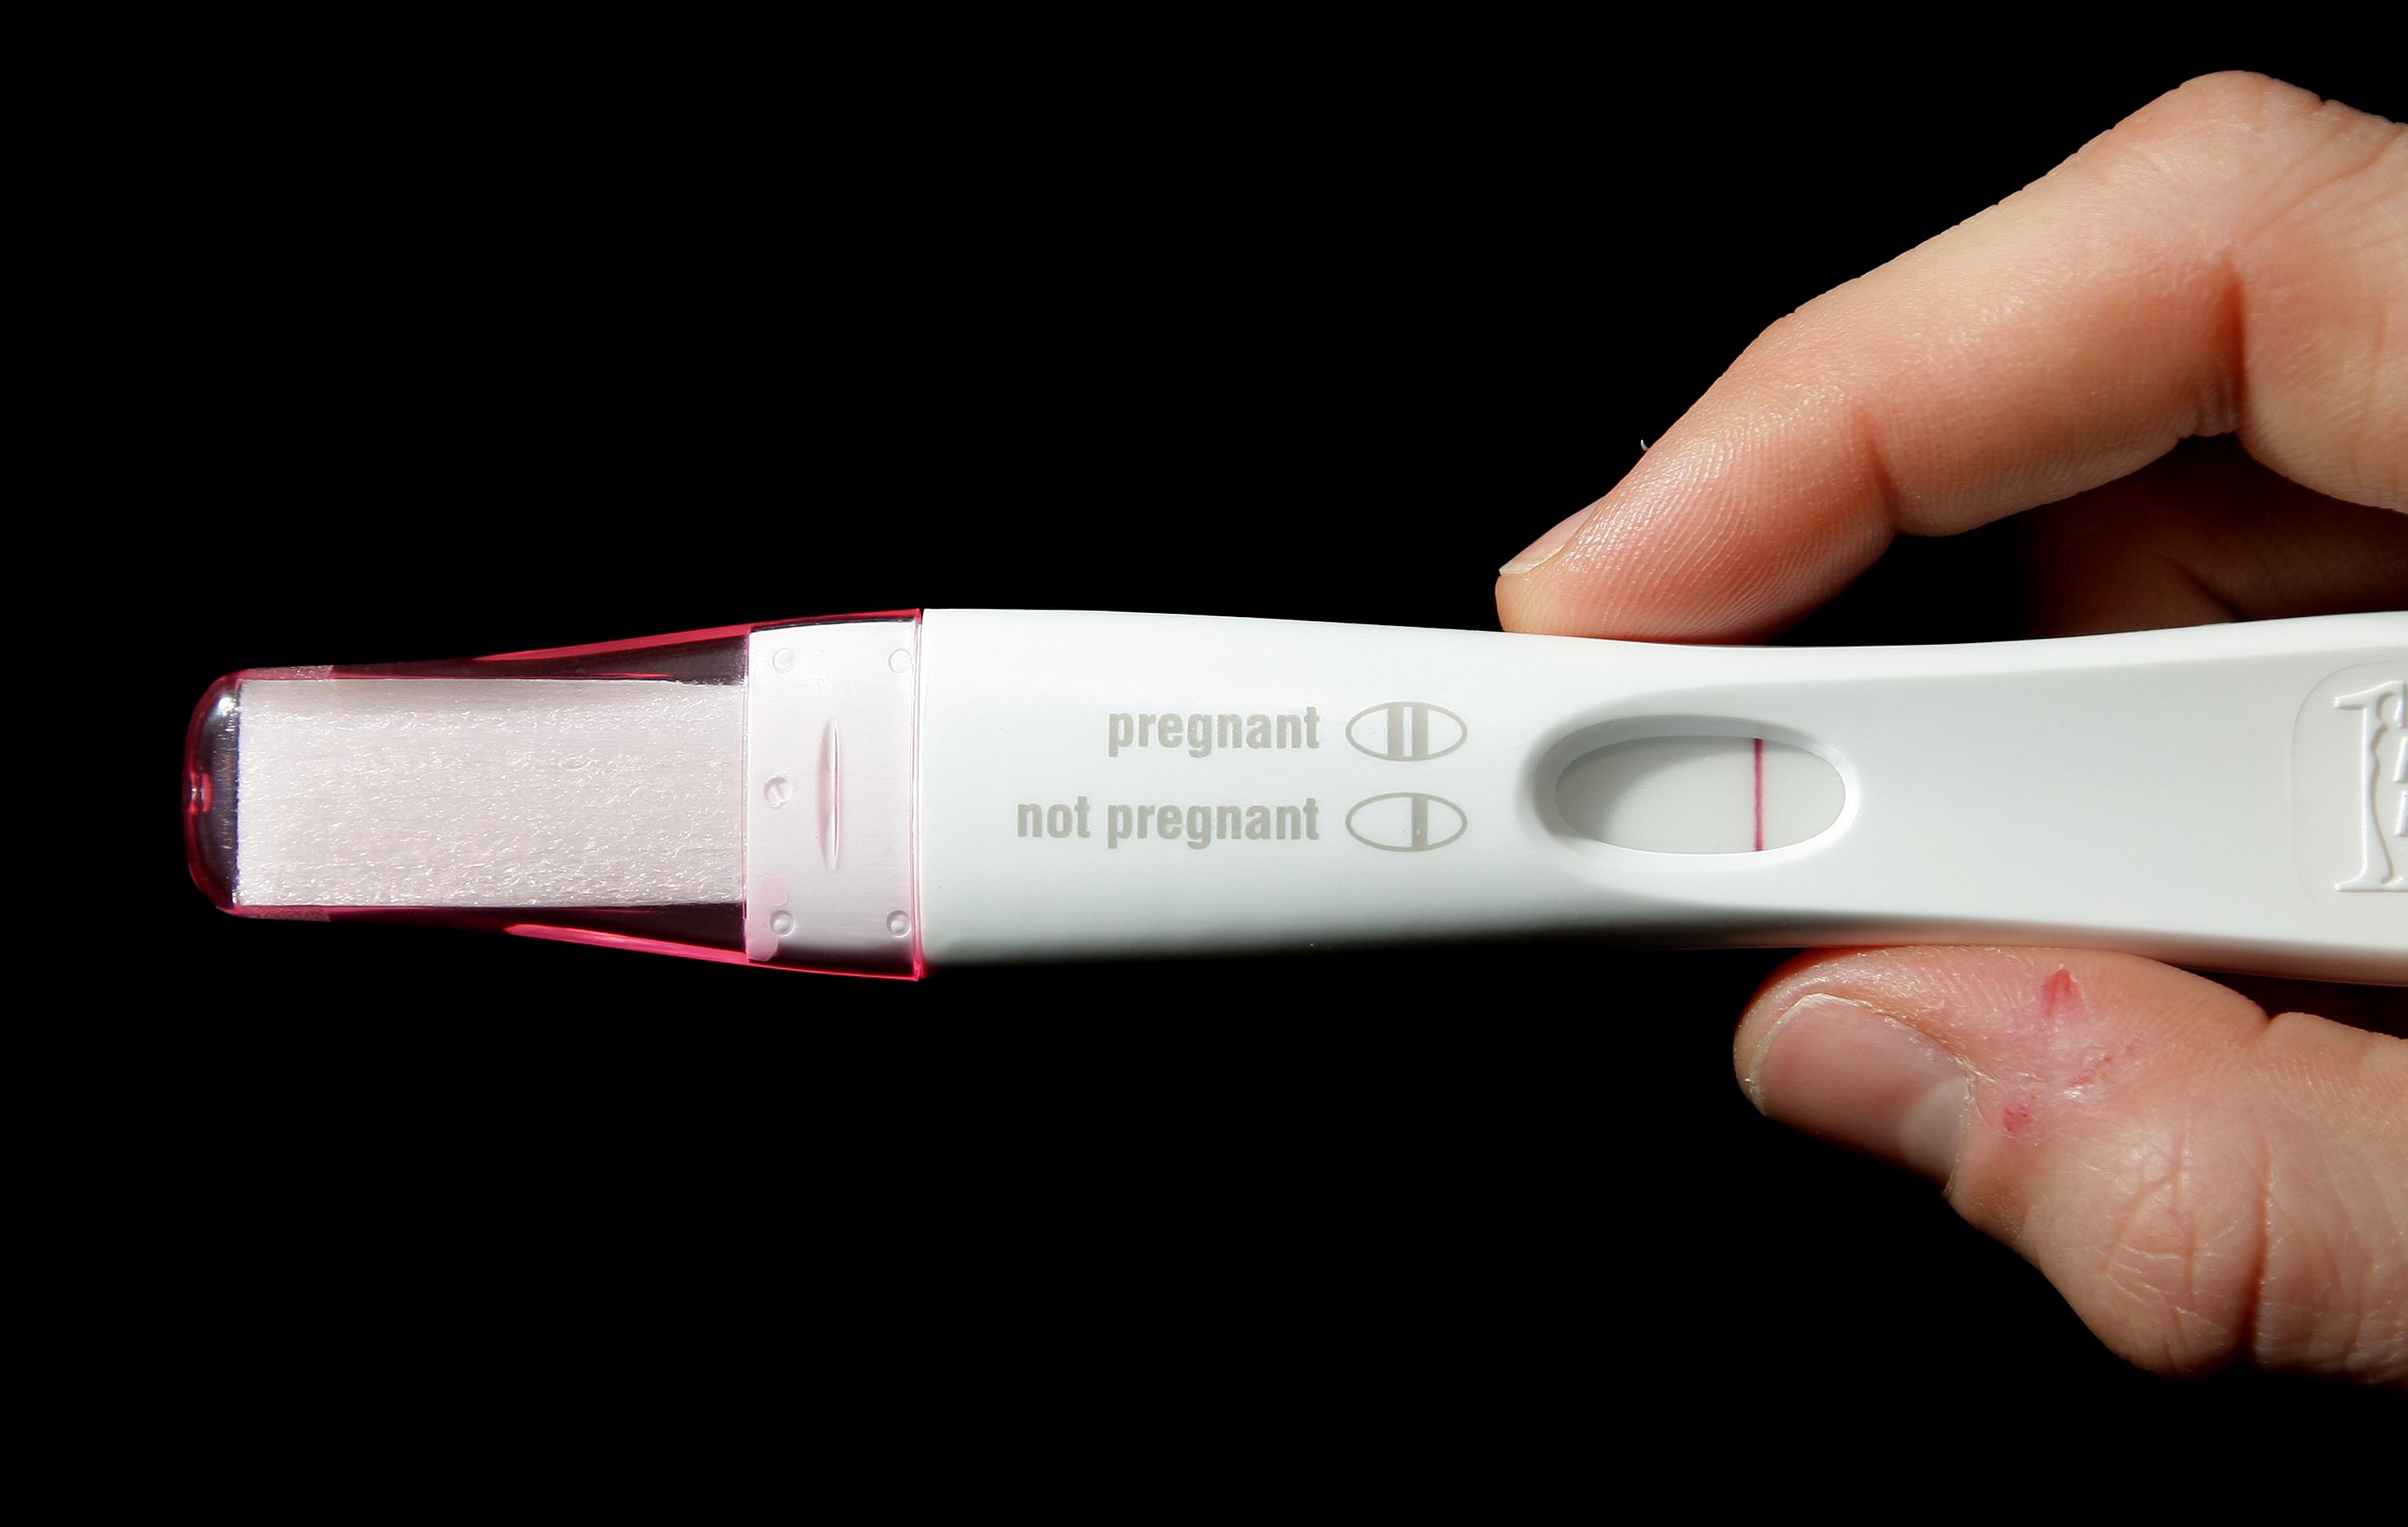 An ACTUAL pregnancy test. Credit: PA